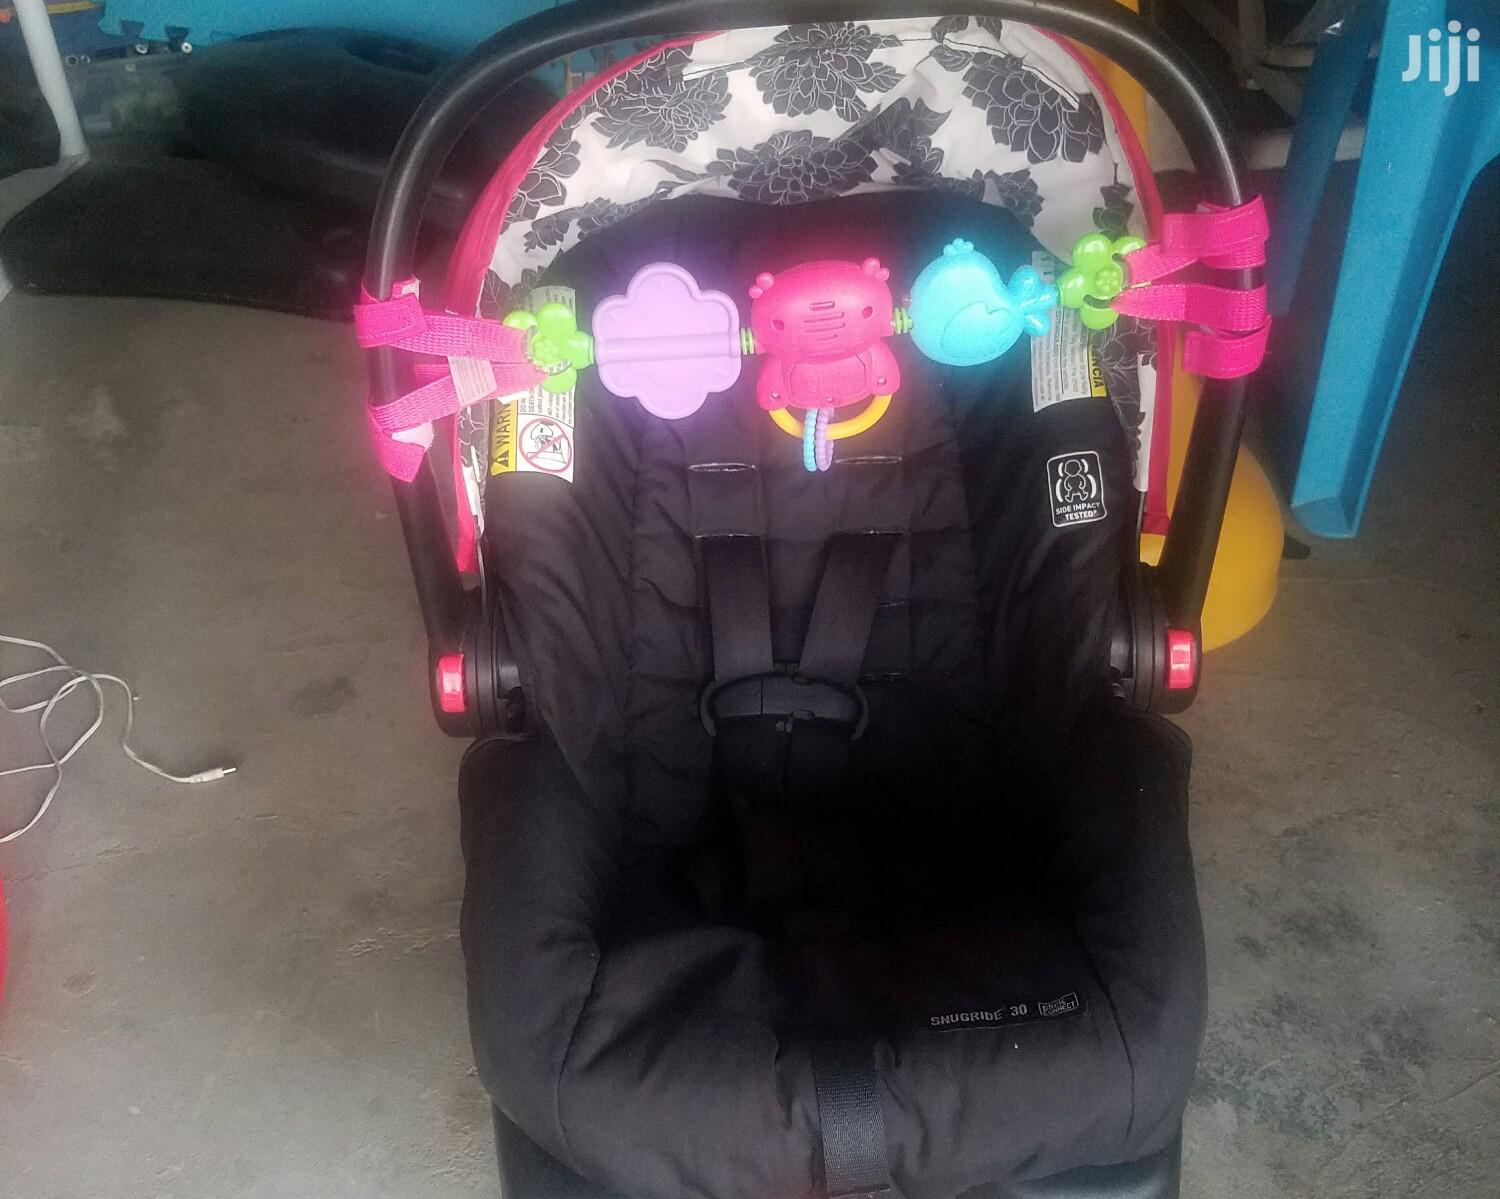 Archive: Newborn Baby's Car Seat From U.S